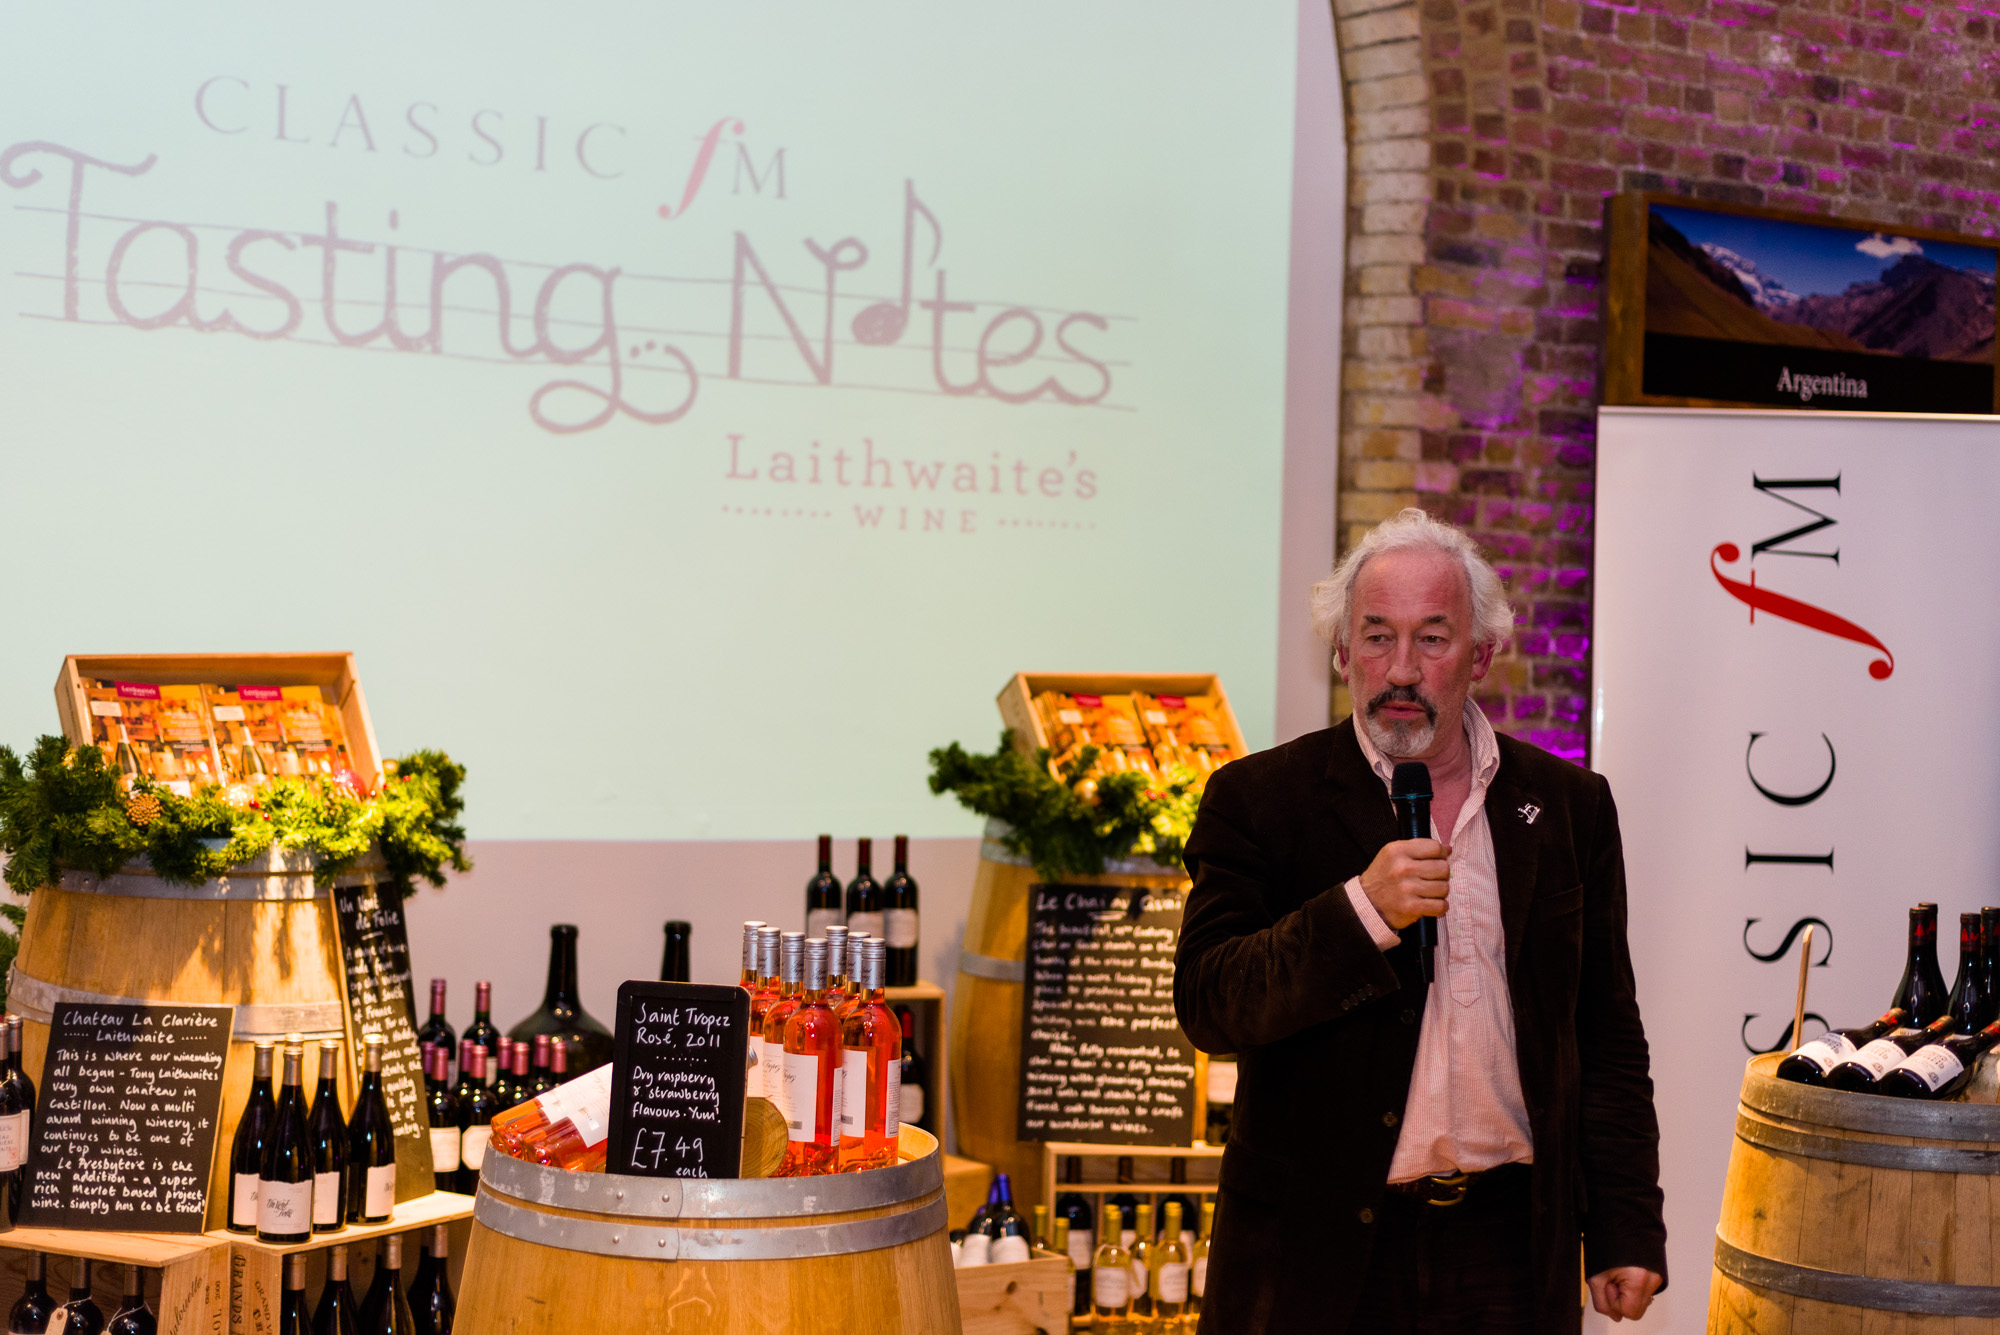 Simon Callow introduces